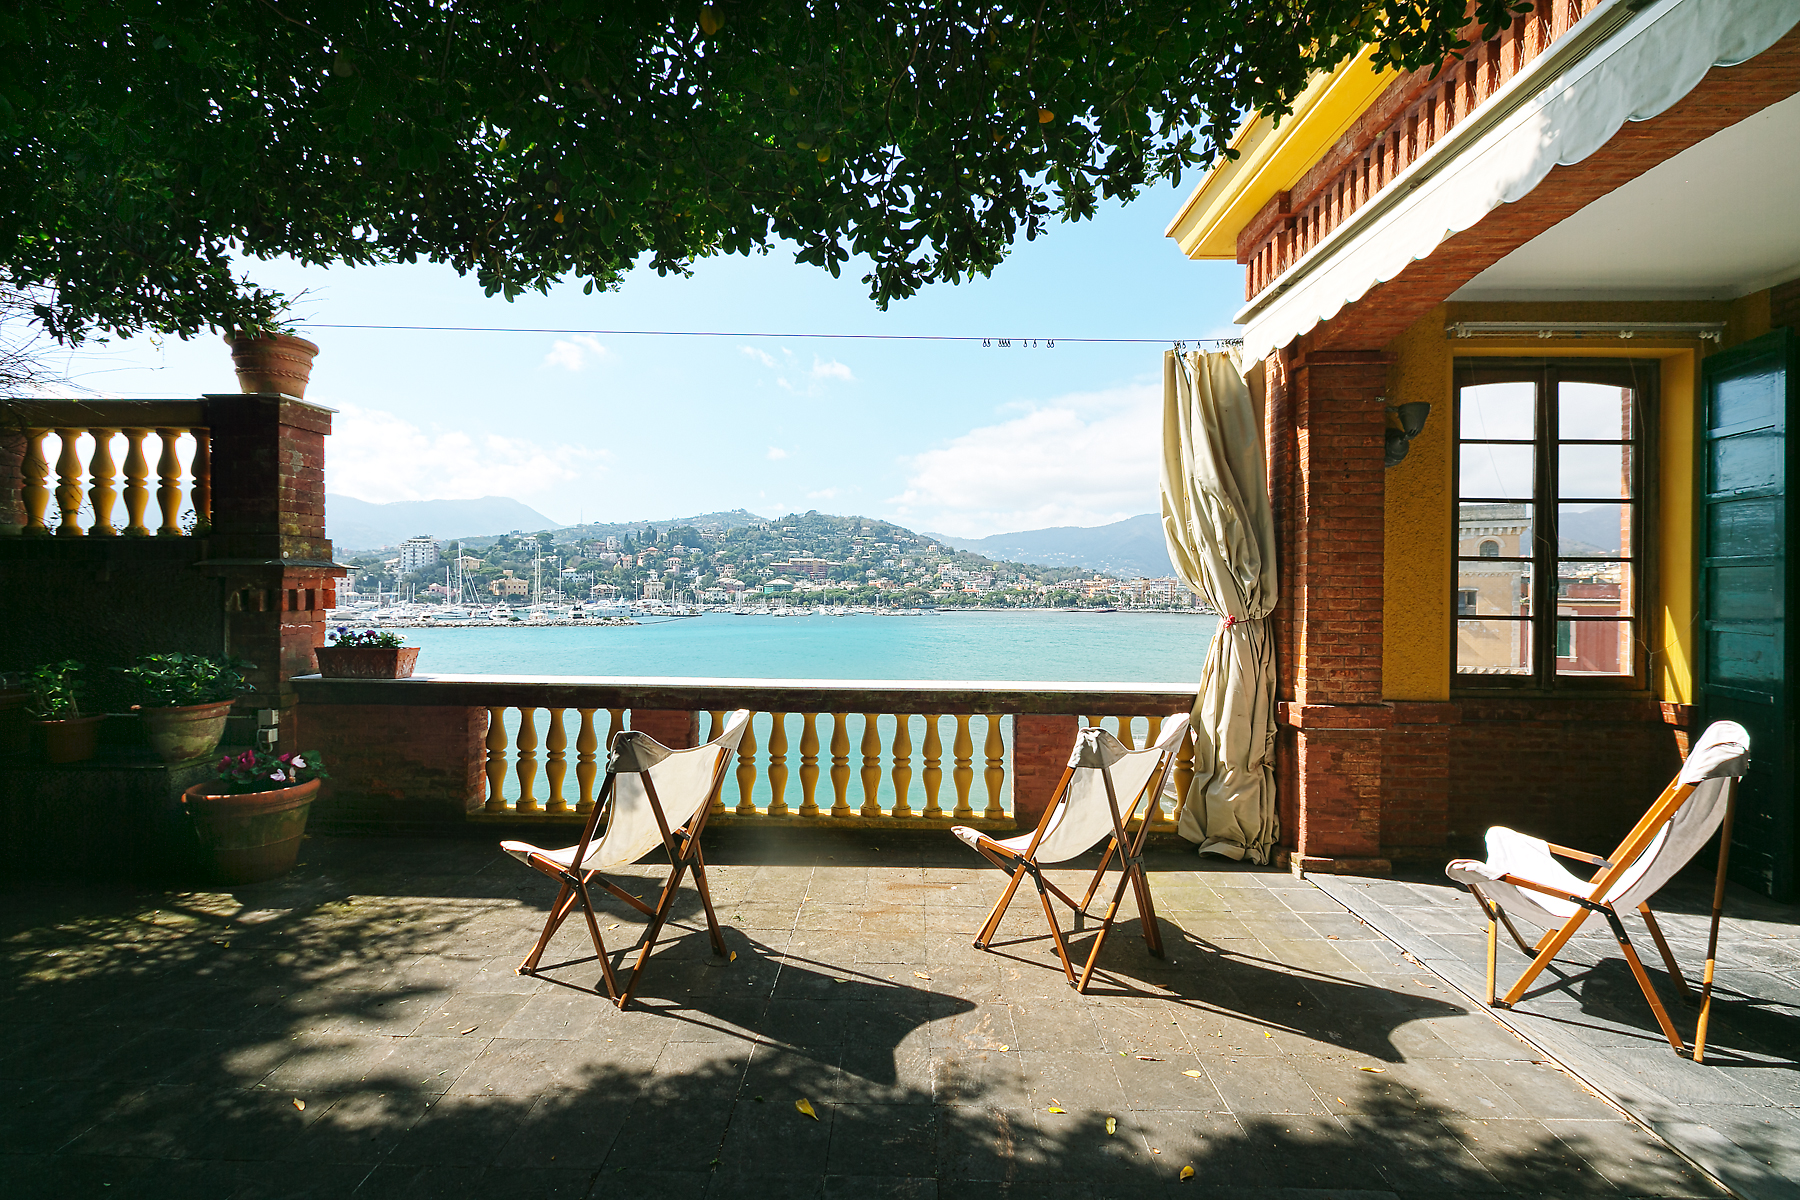 Additional photo for property listing at Magnificent two-story waterfront residence Via Avenaggi Rapallo, Genoa 16035 Italy